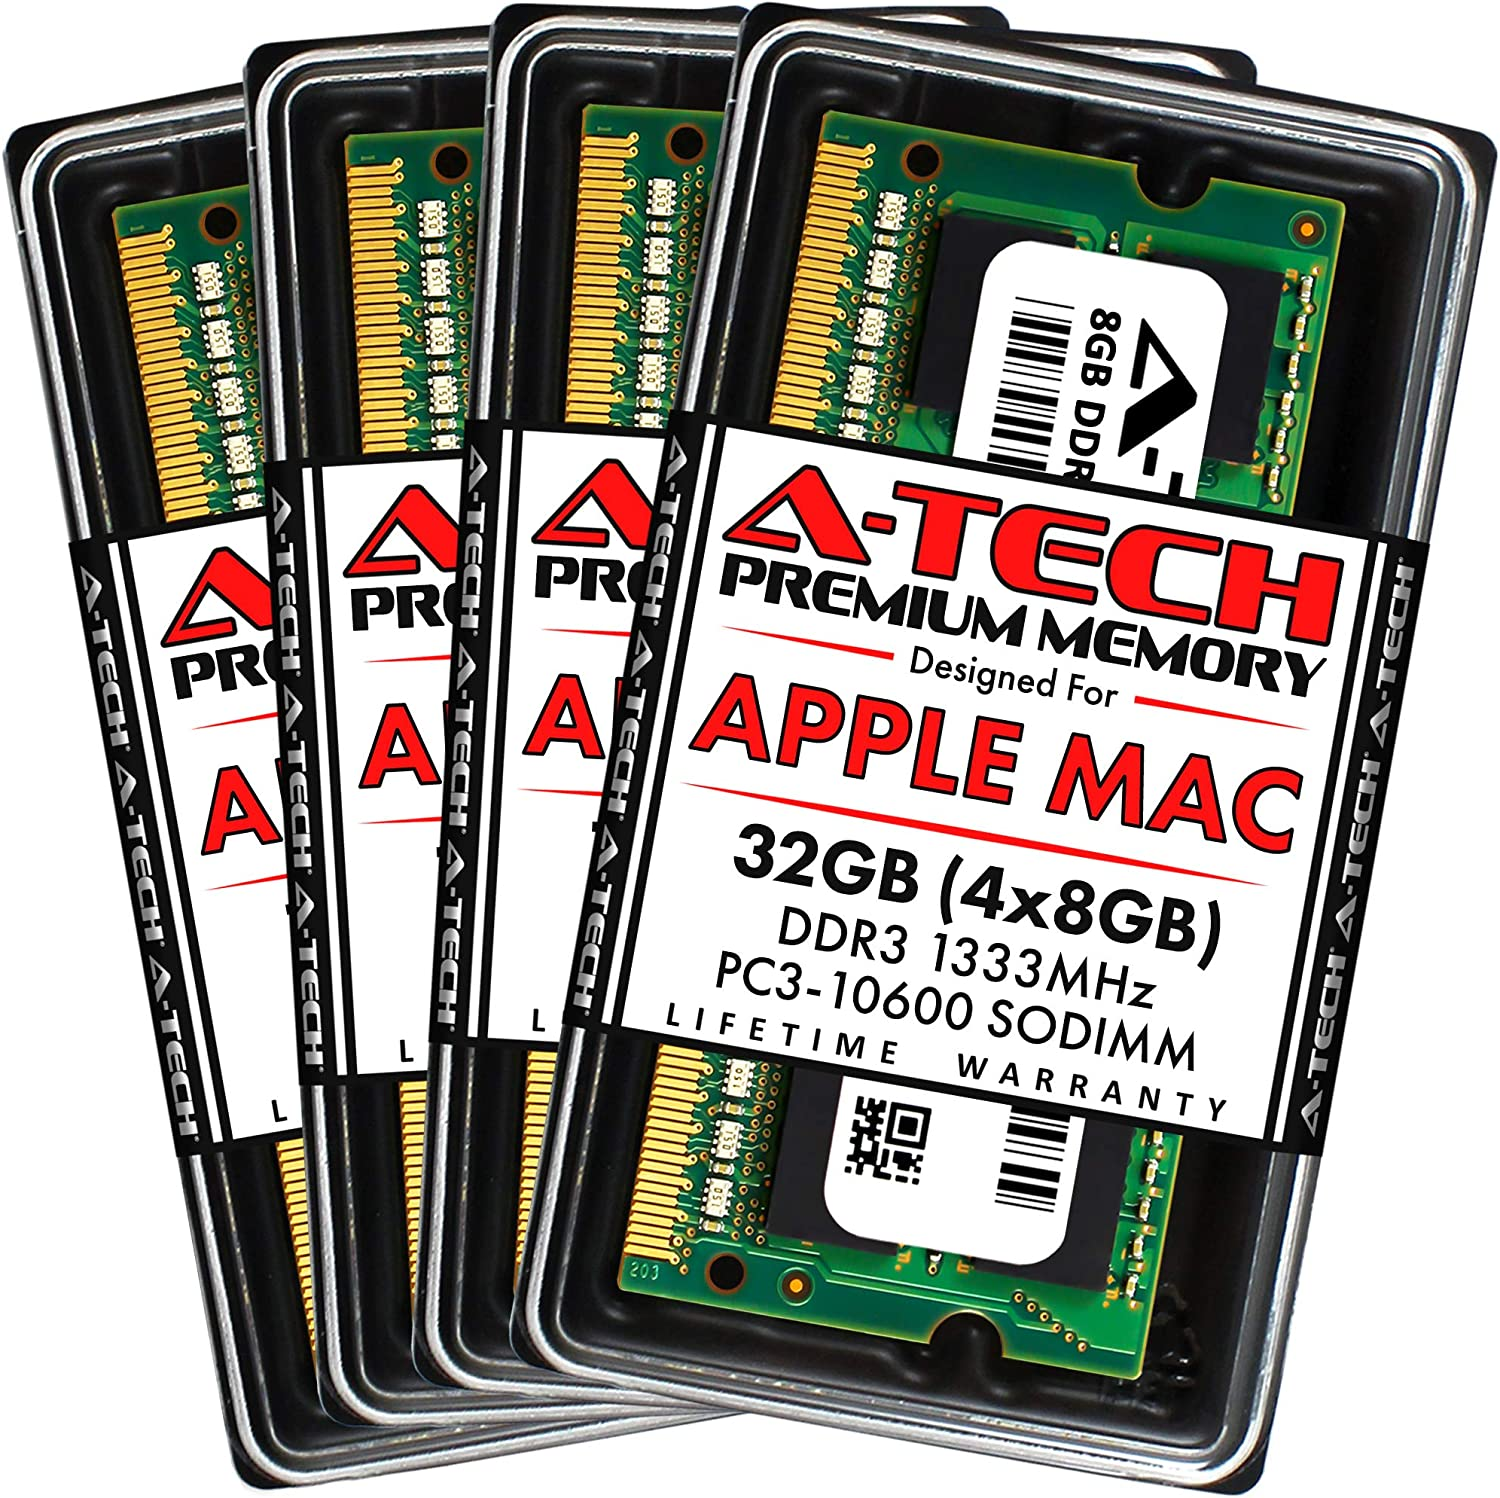 A-Tech 32GB Kit (4x8GB) DDR3 1333MHz SODIMM PC3-10600 RAM for Apple iMac (Mid 2010 27 inch, Mid 2011 21.5/27 inch) | Max Memory Upgrade